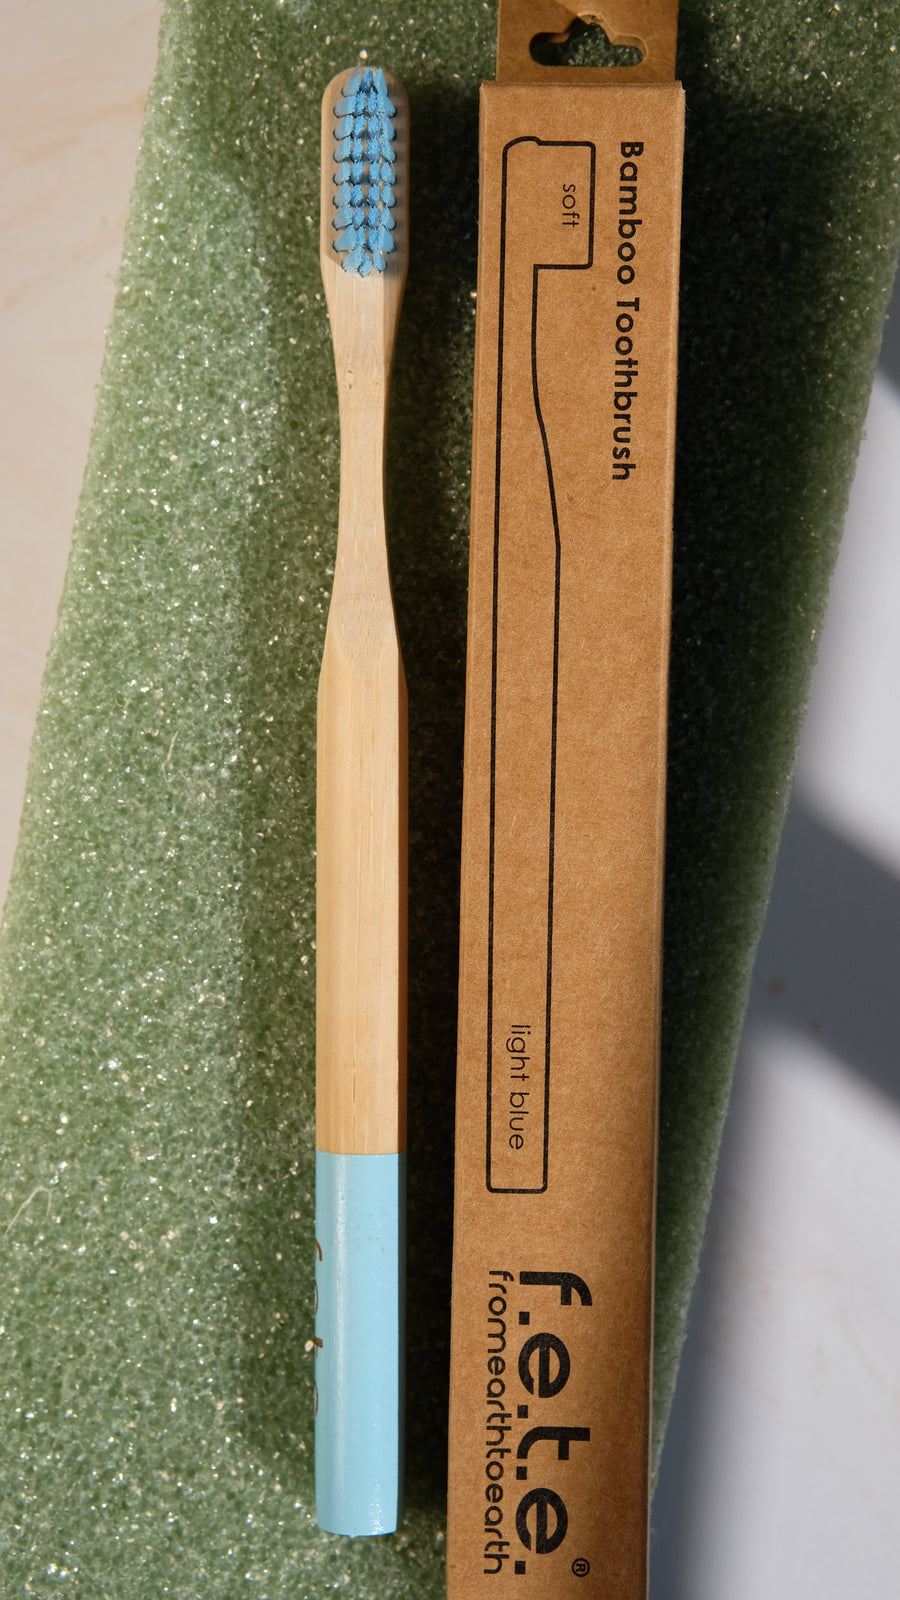 F.E.T.E. Soft Bamboo Toothbrush in Light Blue